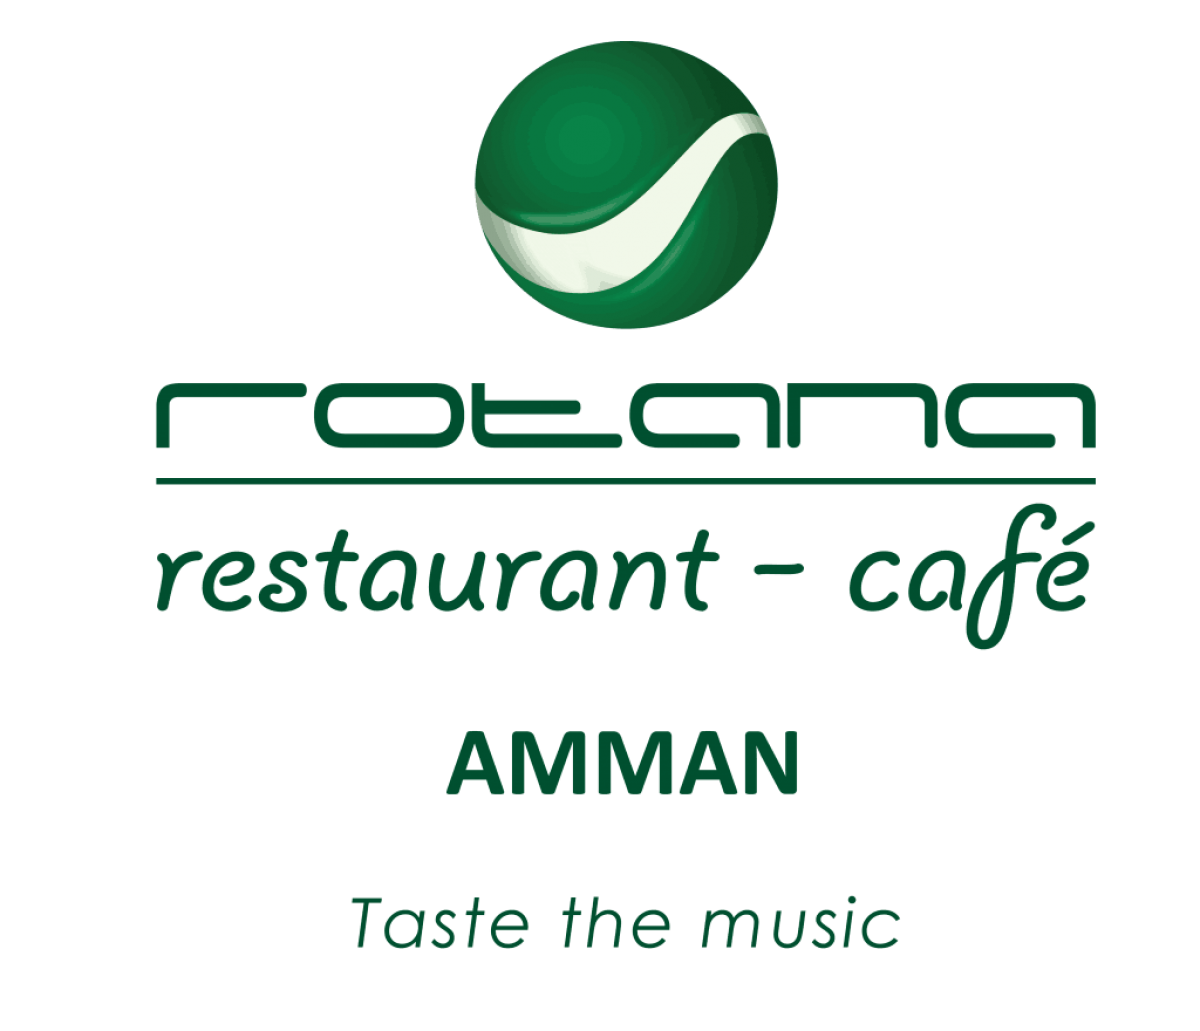 Cafe amman middle east. Rotana clip logo graphic stock